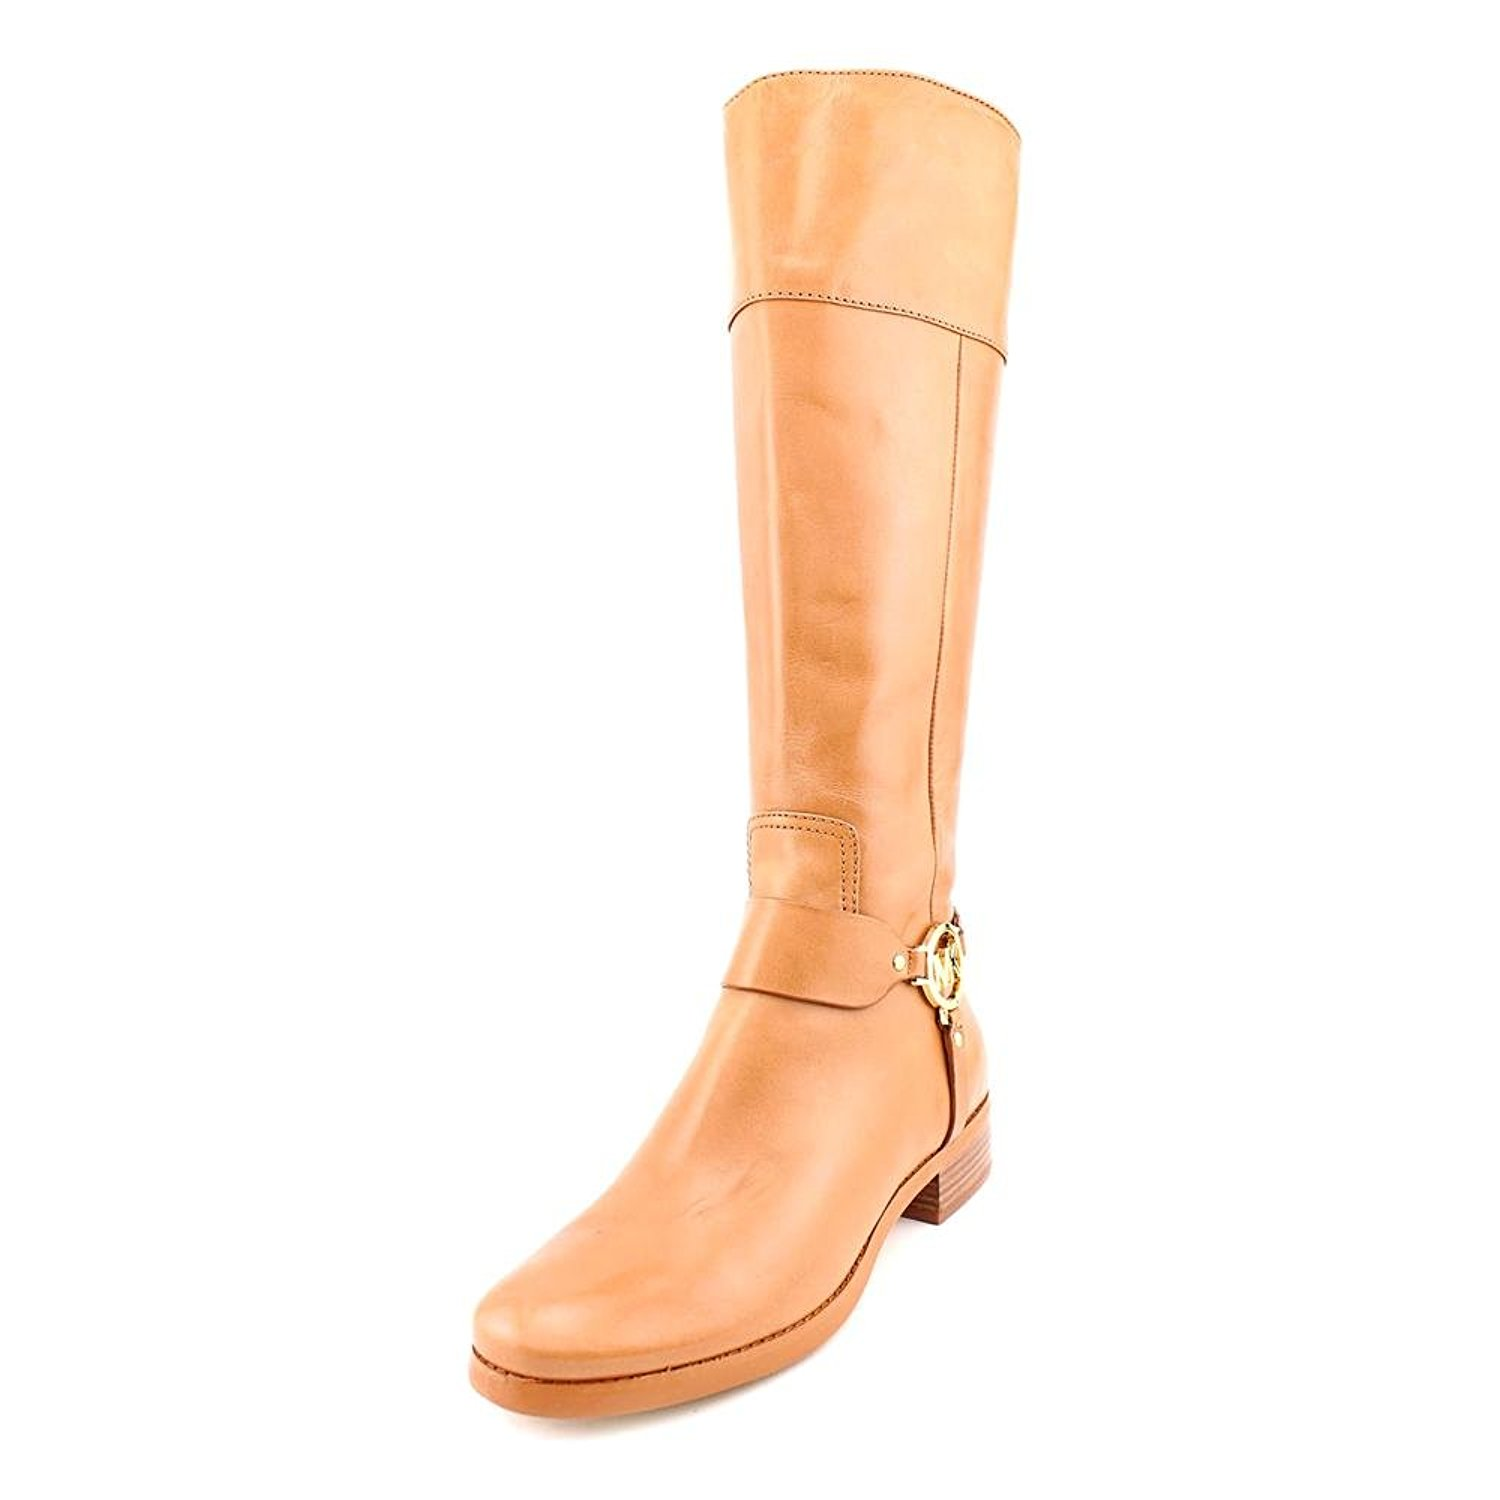 Michael Kors Womens Fulton Leather Round Toe Knee High Riding Boots